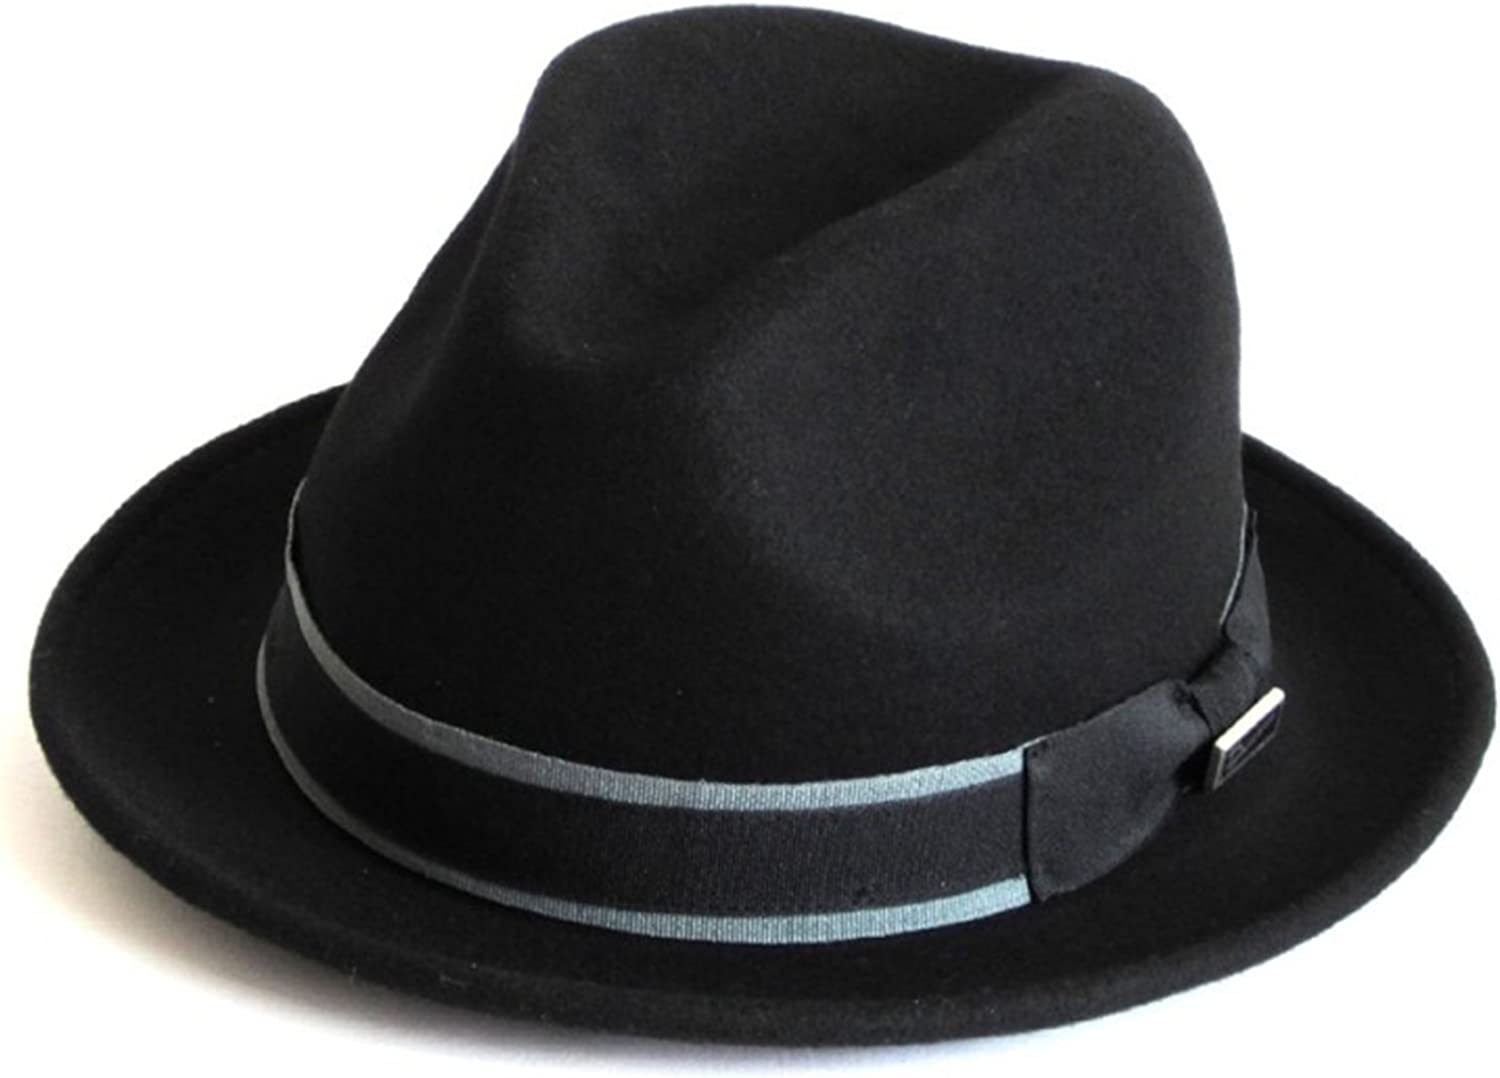 DASMARCA Max 40% OFF Mens Crushable Packable Felt 67% OFF of fixed price Hat Fedora